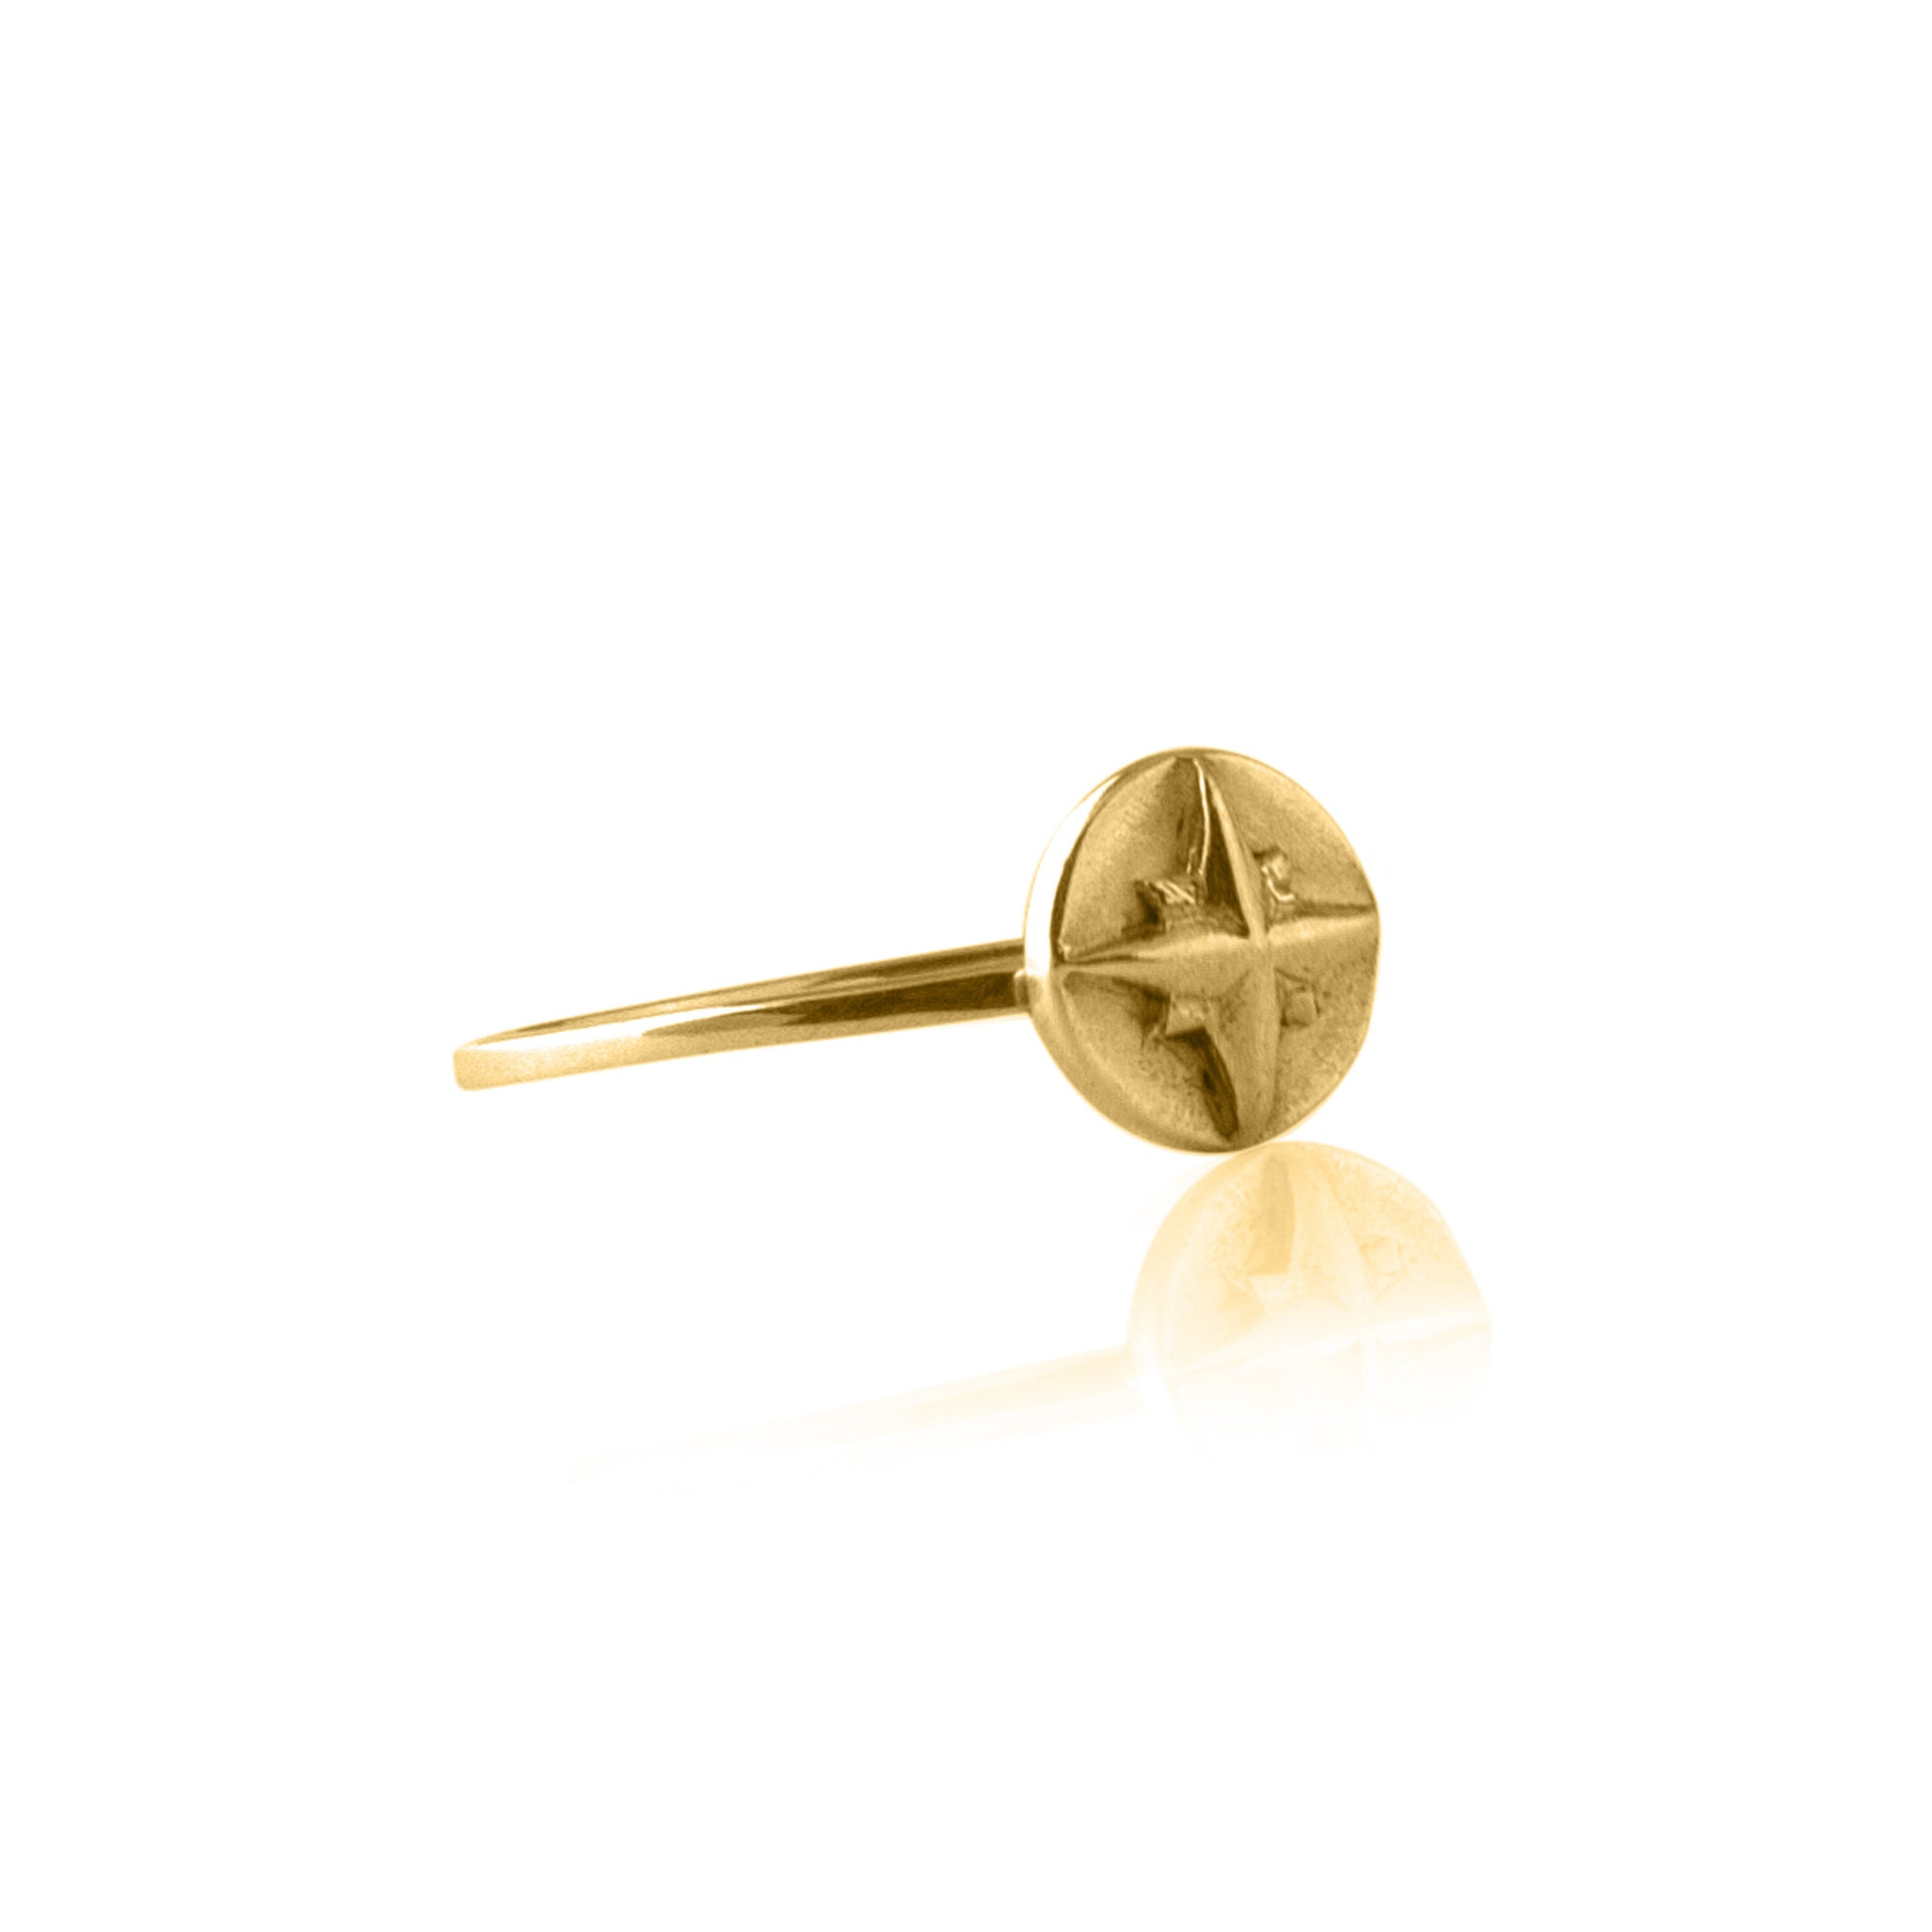 Born to Roam Compass Ring for Travelers from La Luna Rose Jewelry